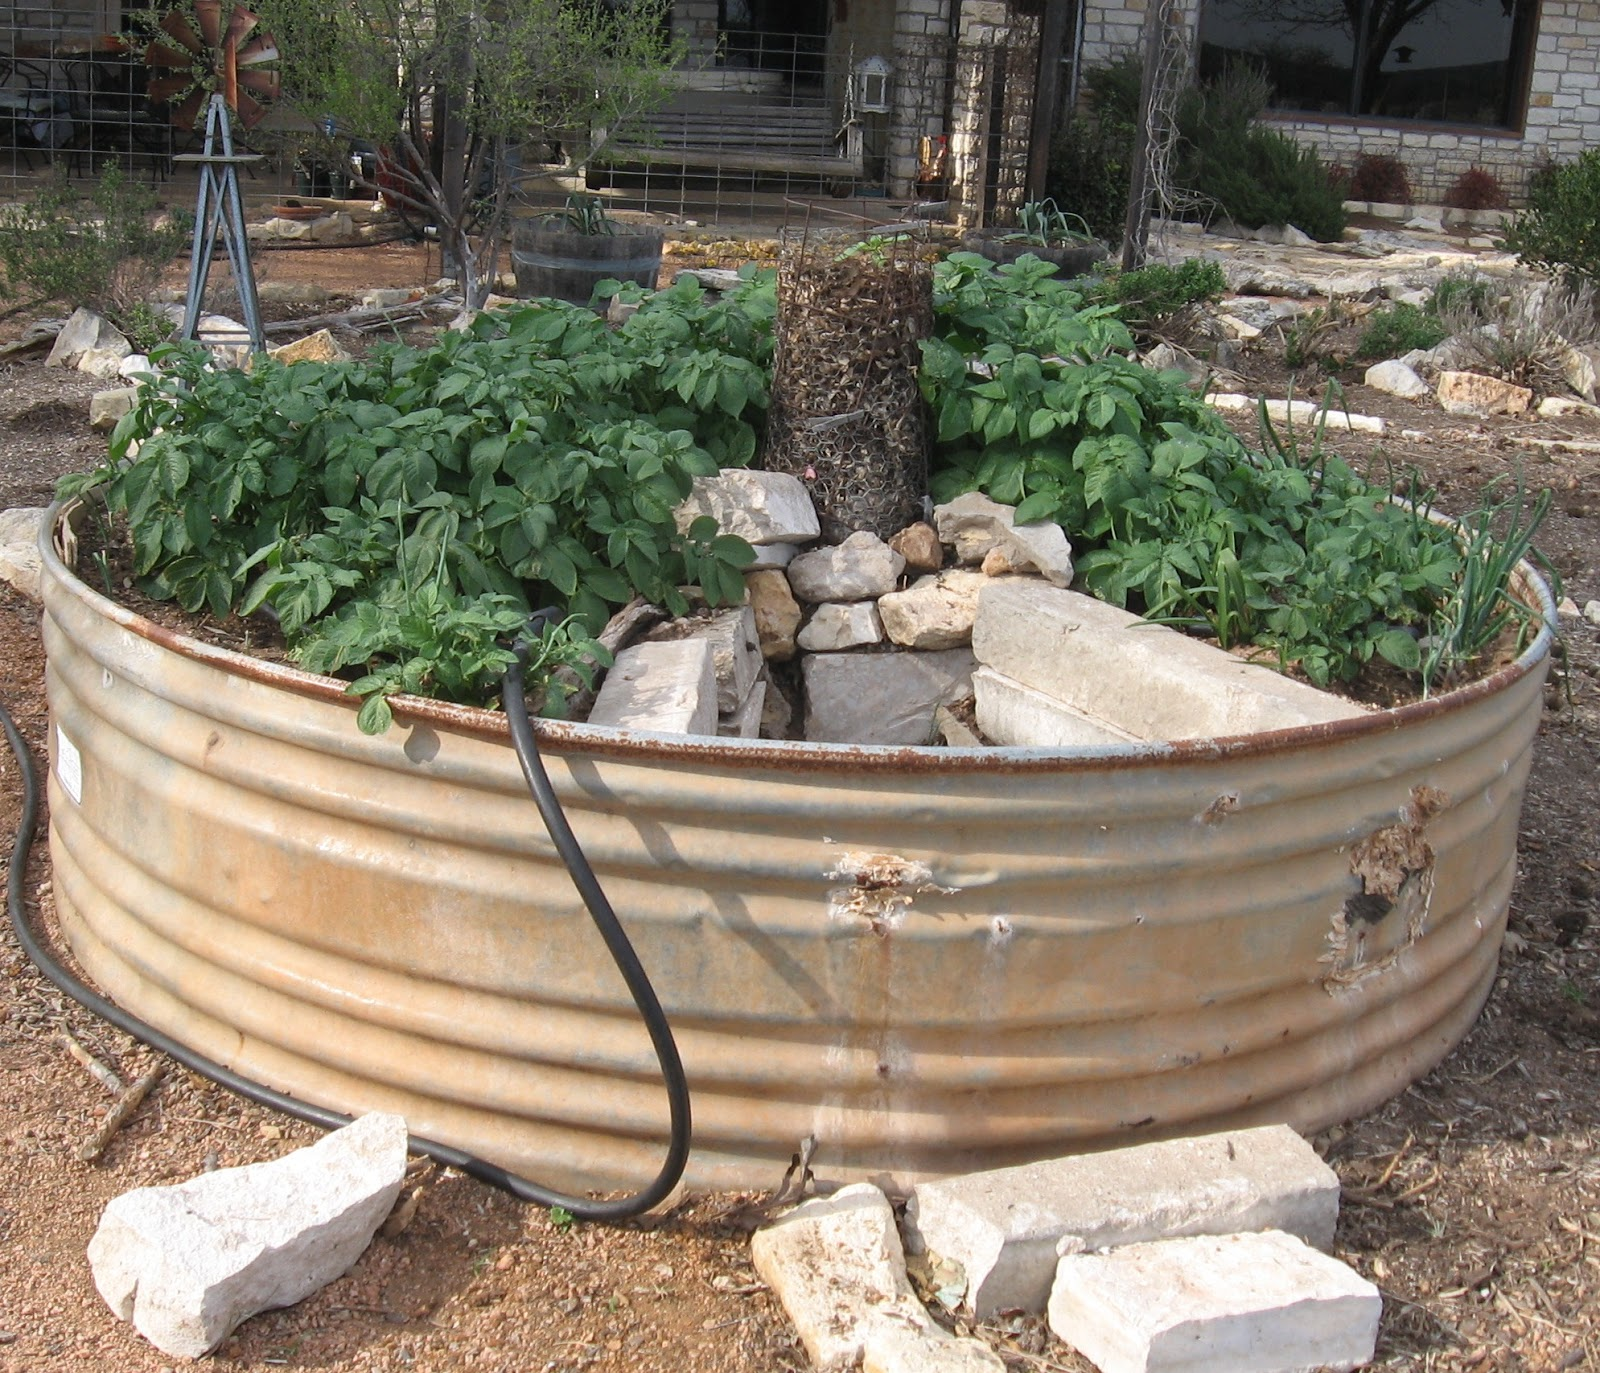 Organicgreendoctor keyhole garden and tomatoes for Keyhole garden designs